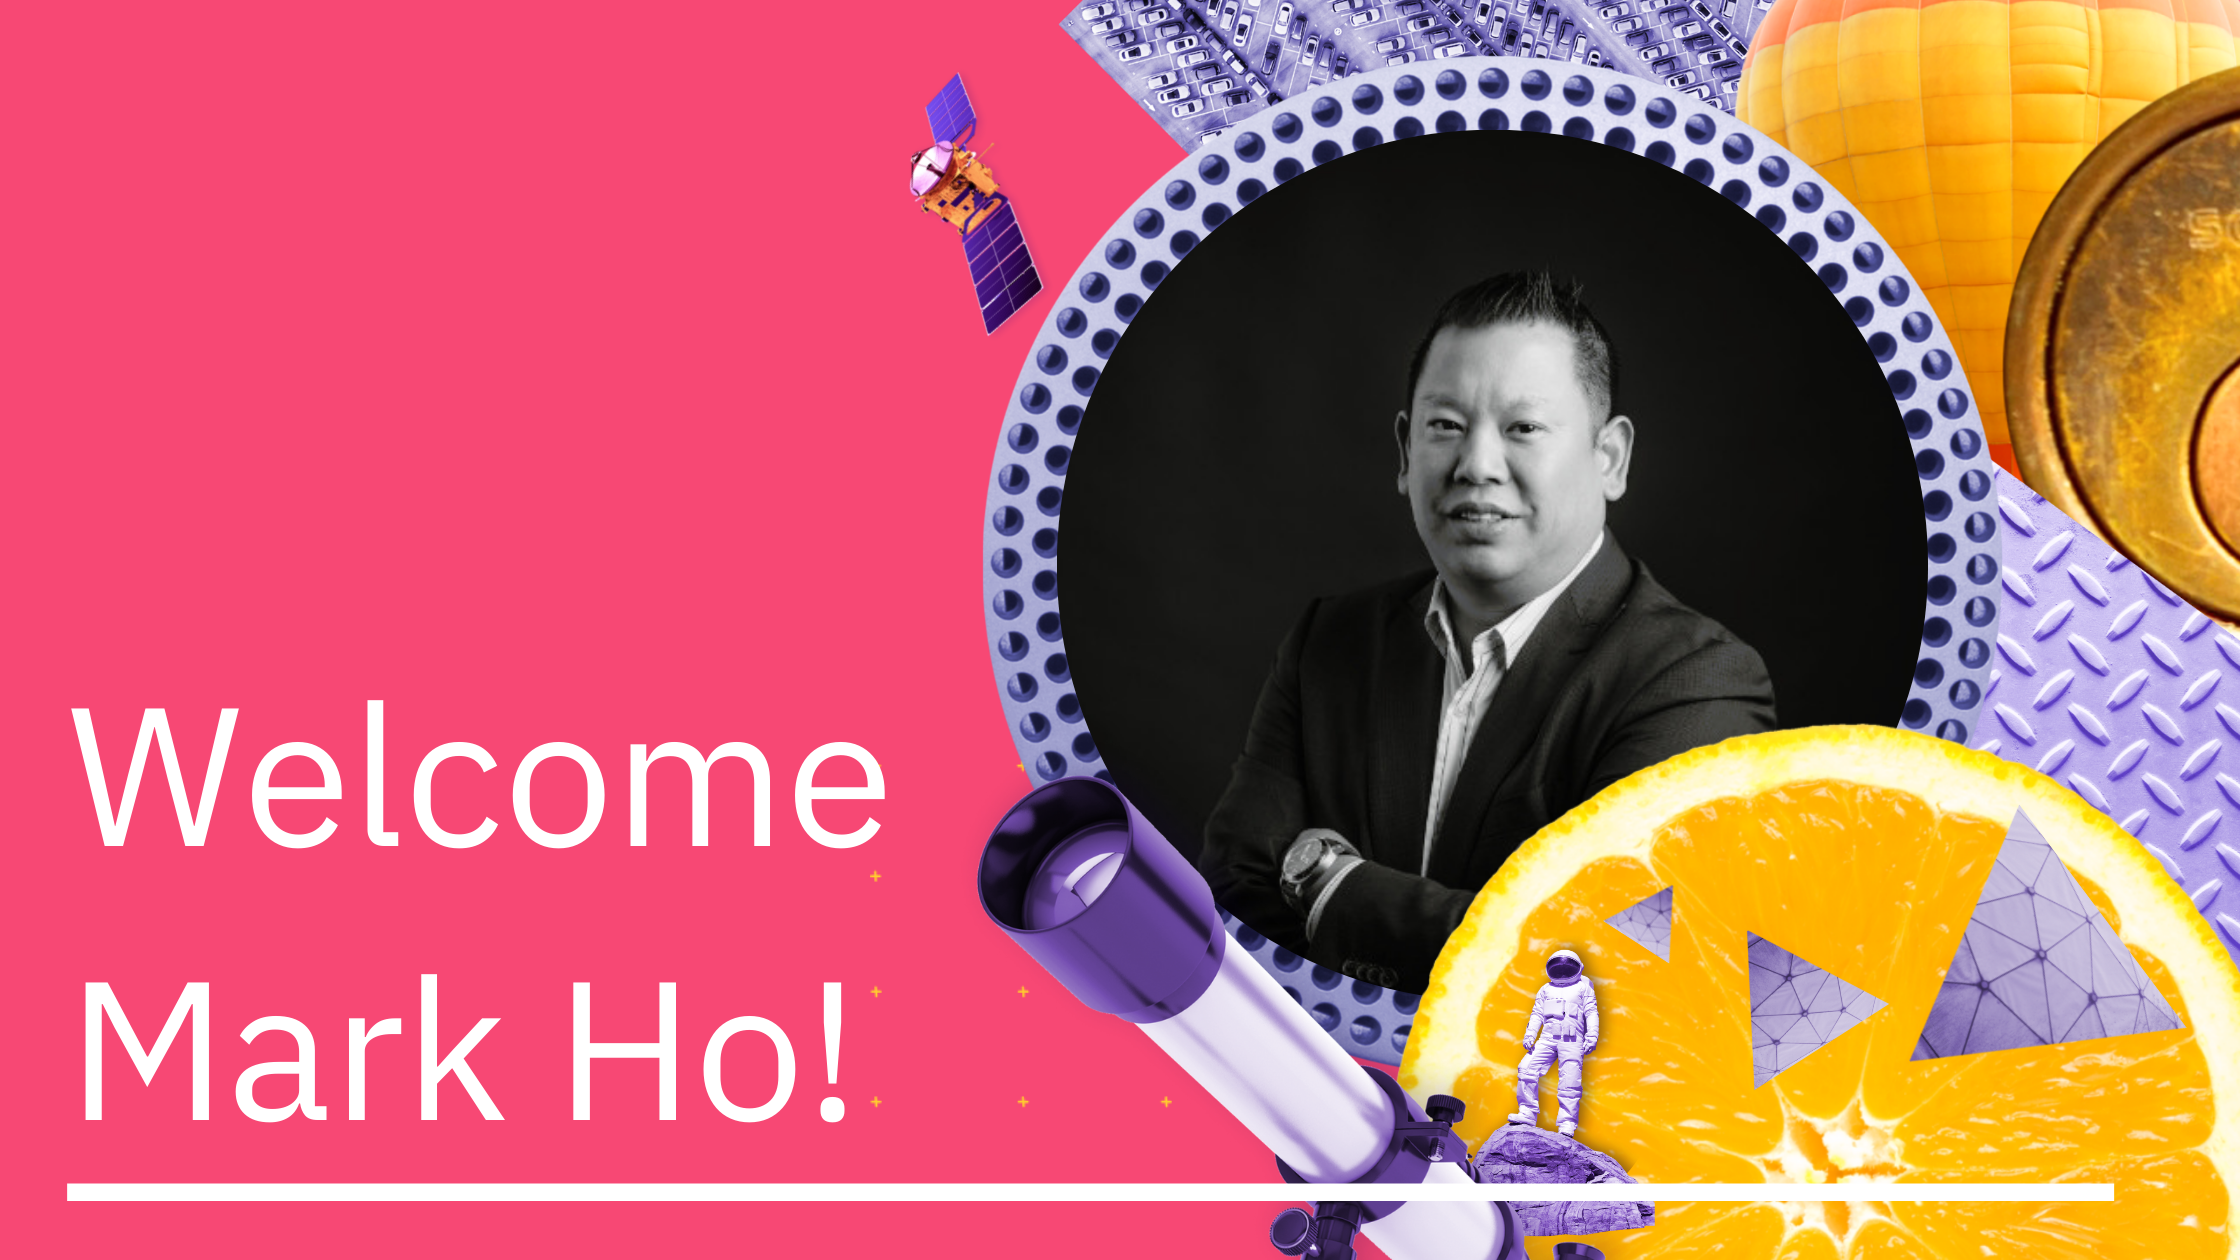 Launchable Welcomes Mark Ho as New Vice President of Sales, Accelerating Its Growth and Expansion Plans